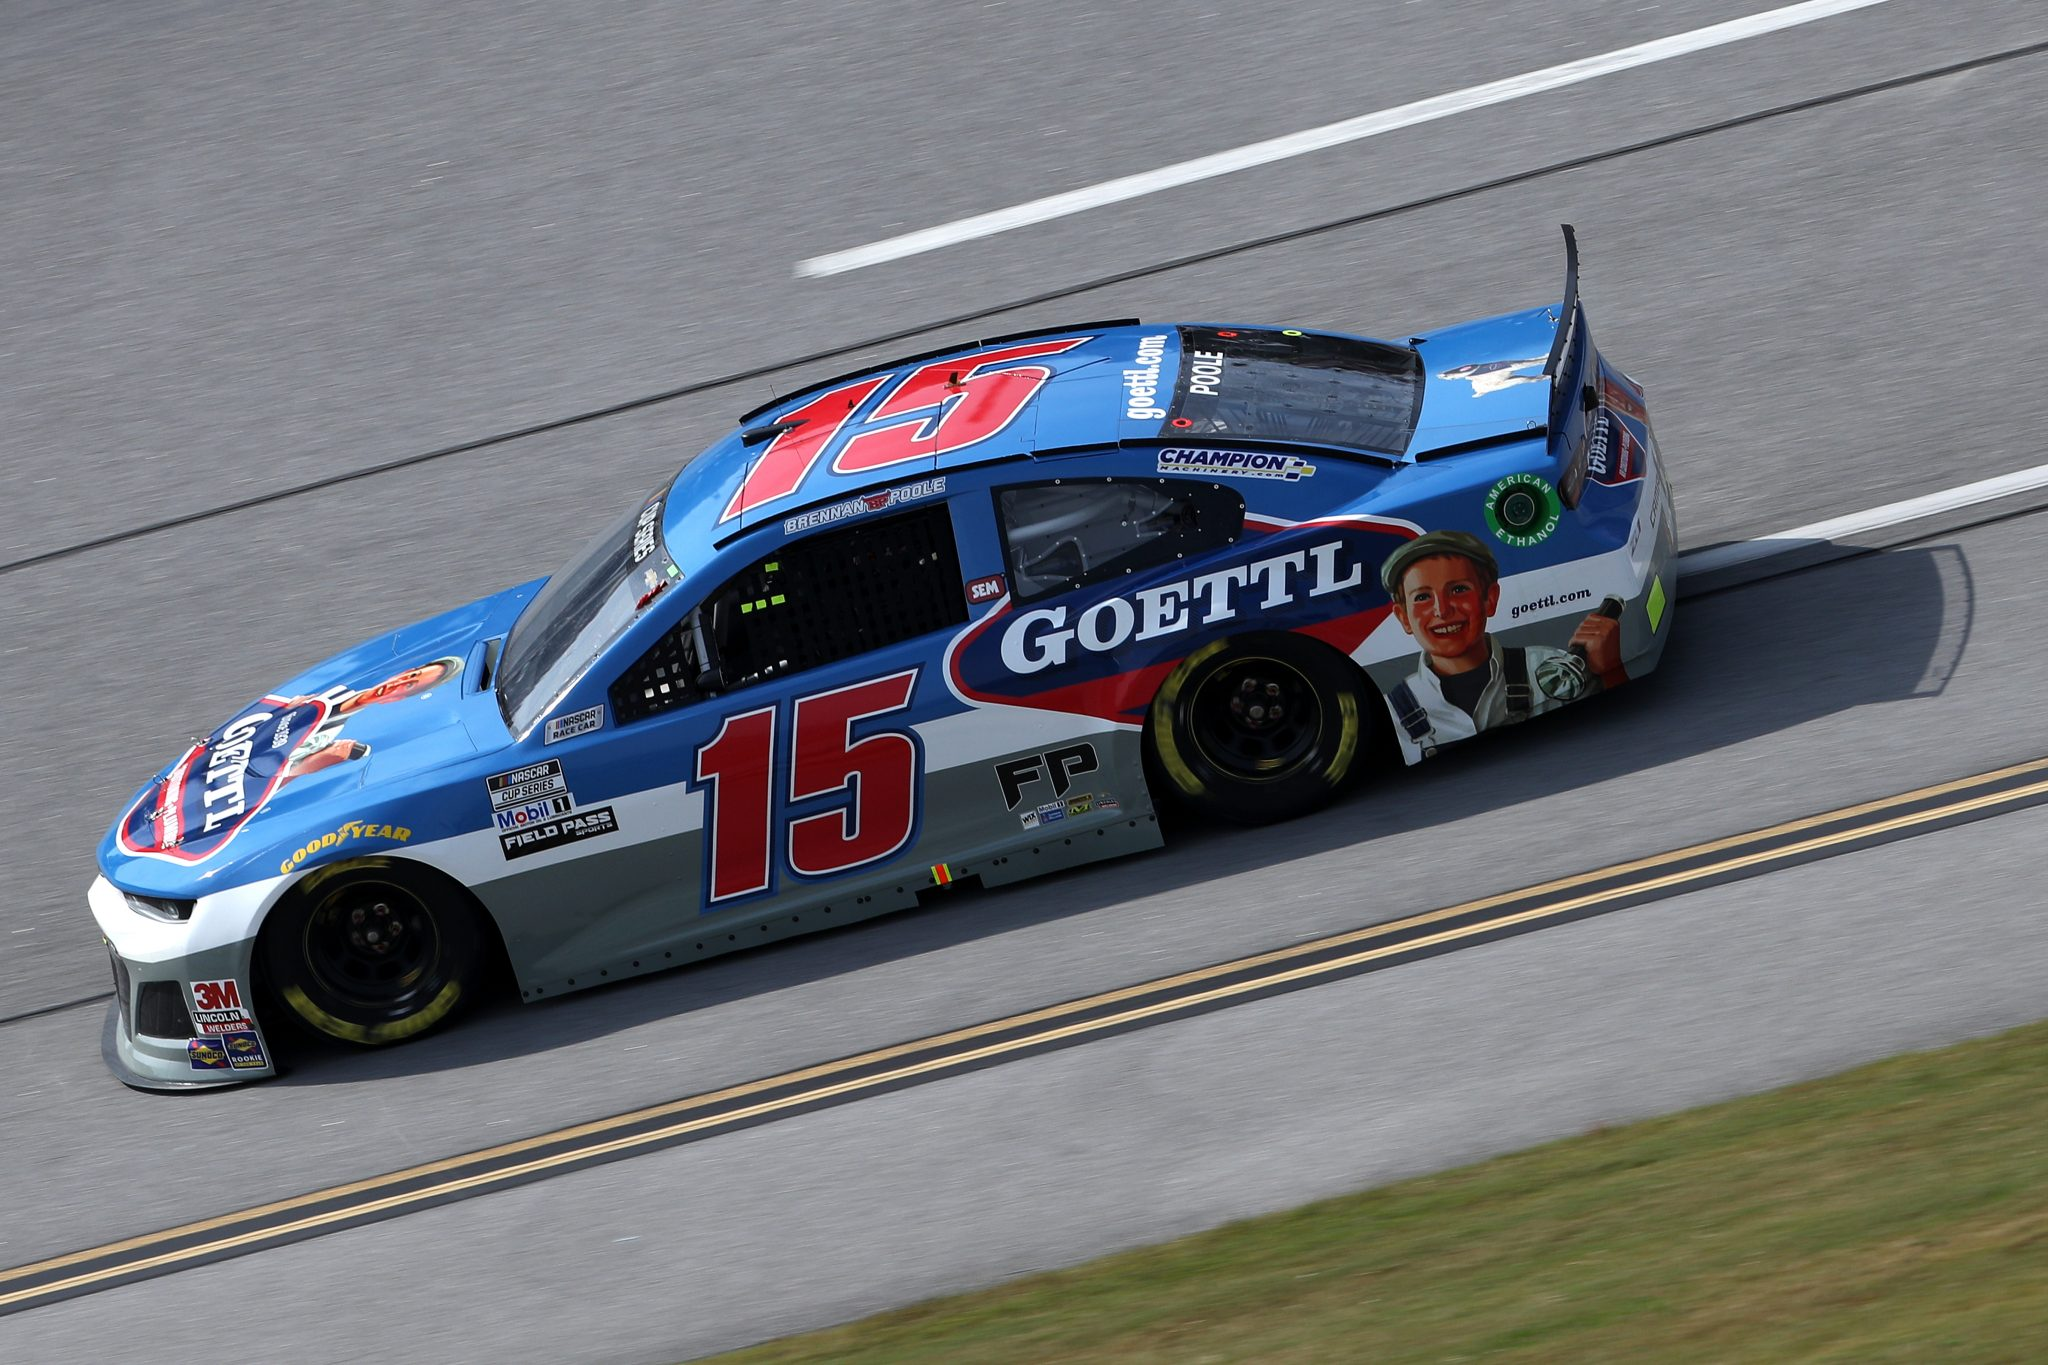 TALLADEGA, ALABAMA - OCTOBER 04: Brennan Poole, driver of the #15 Chevrolet, drives during the NASCAR Cup Series YellaWood 500 at Talladega Superspeedway on October 04, 2020 in Talladega, Alabama. (Photo by Chris Graythen/Getty Images) | Getty Images